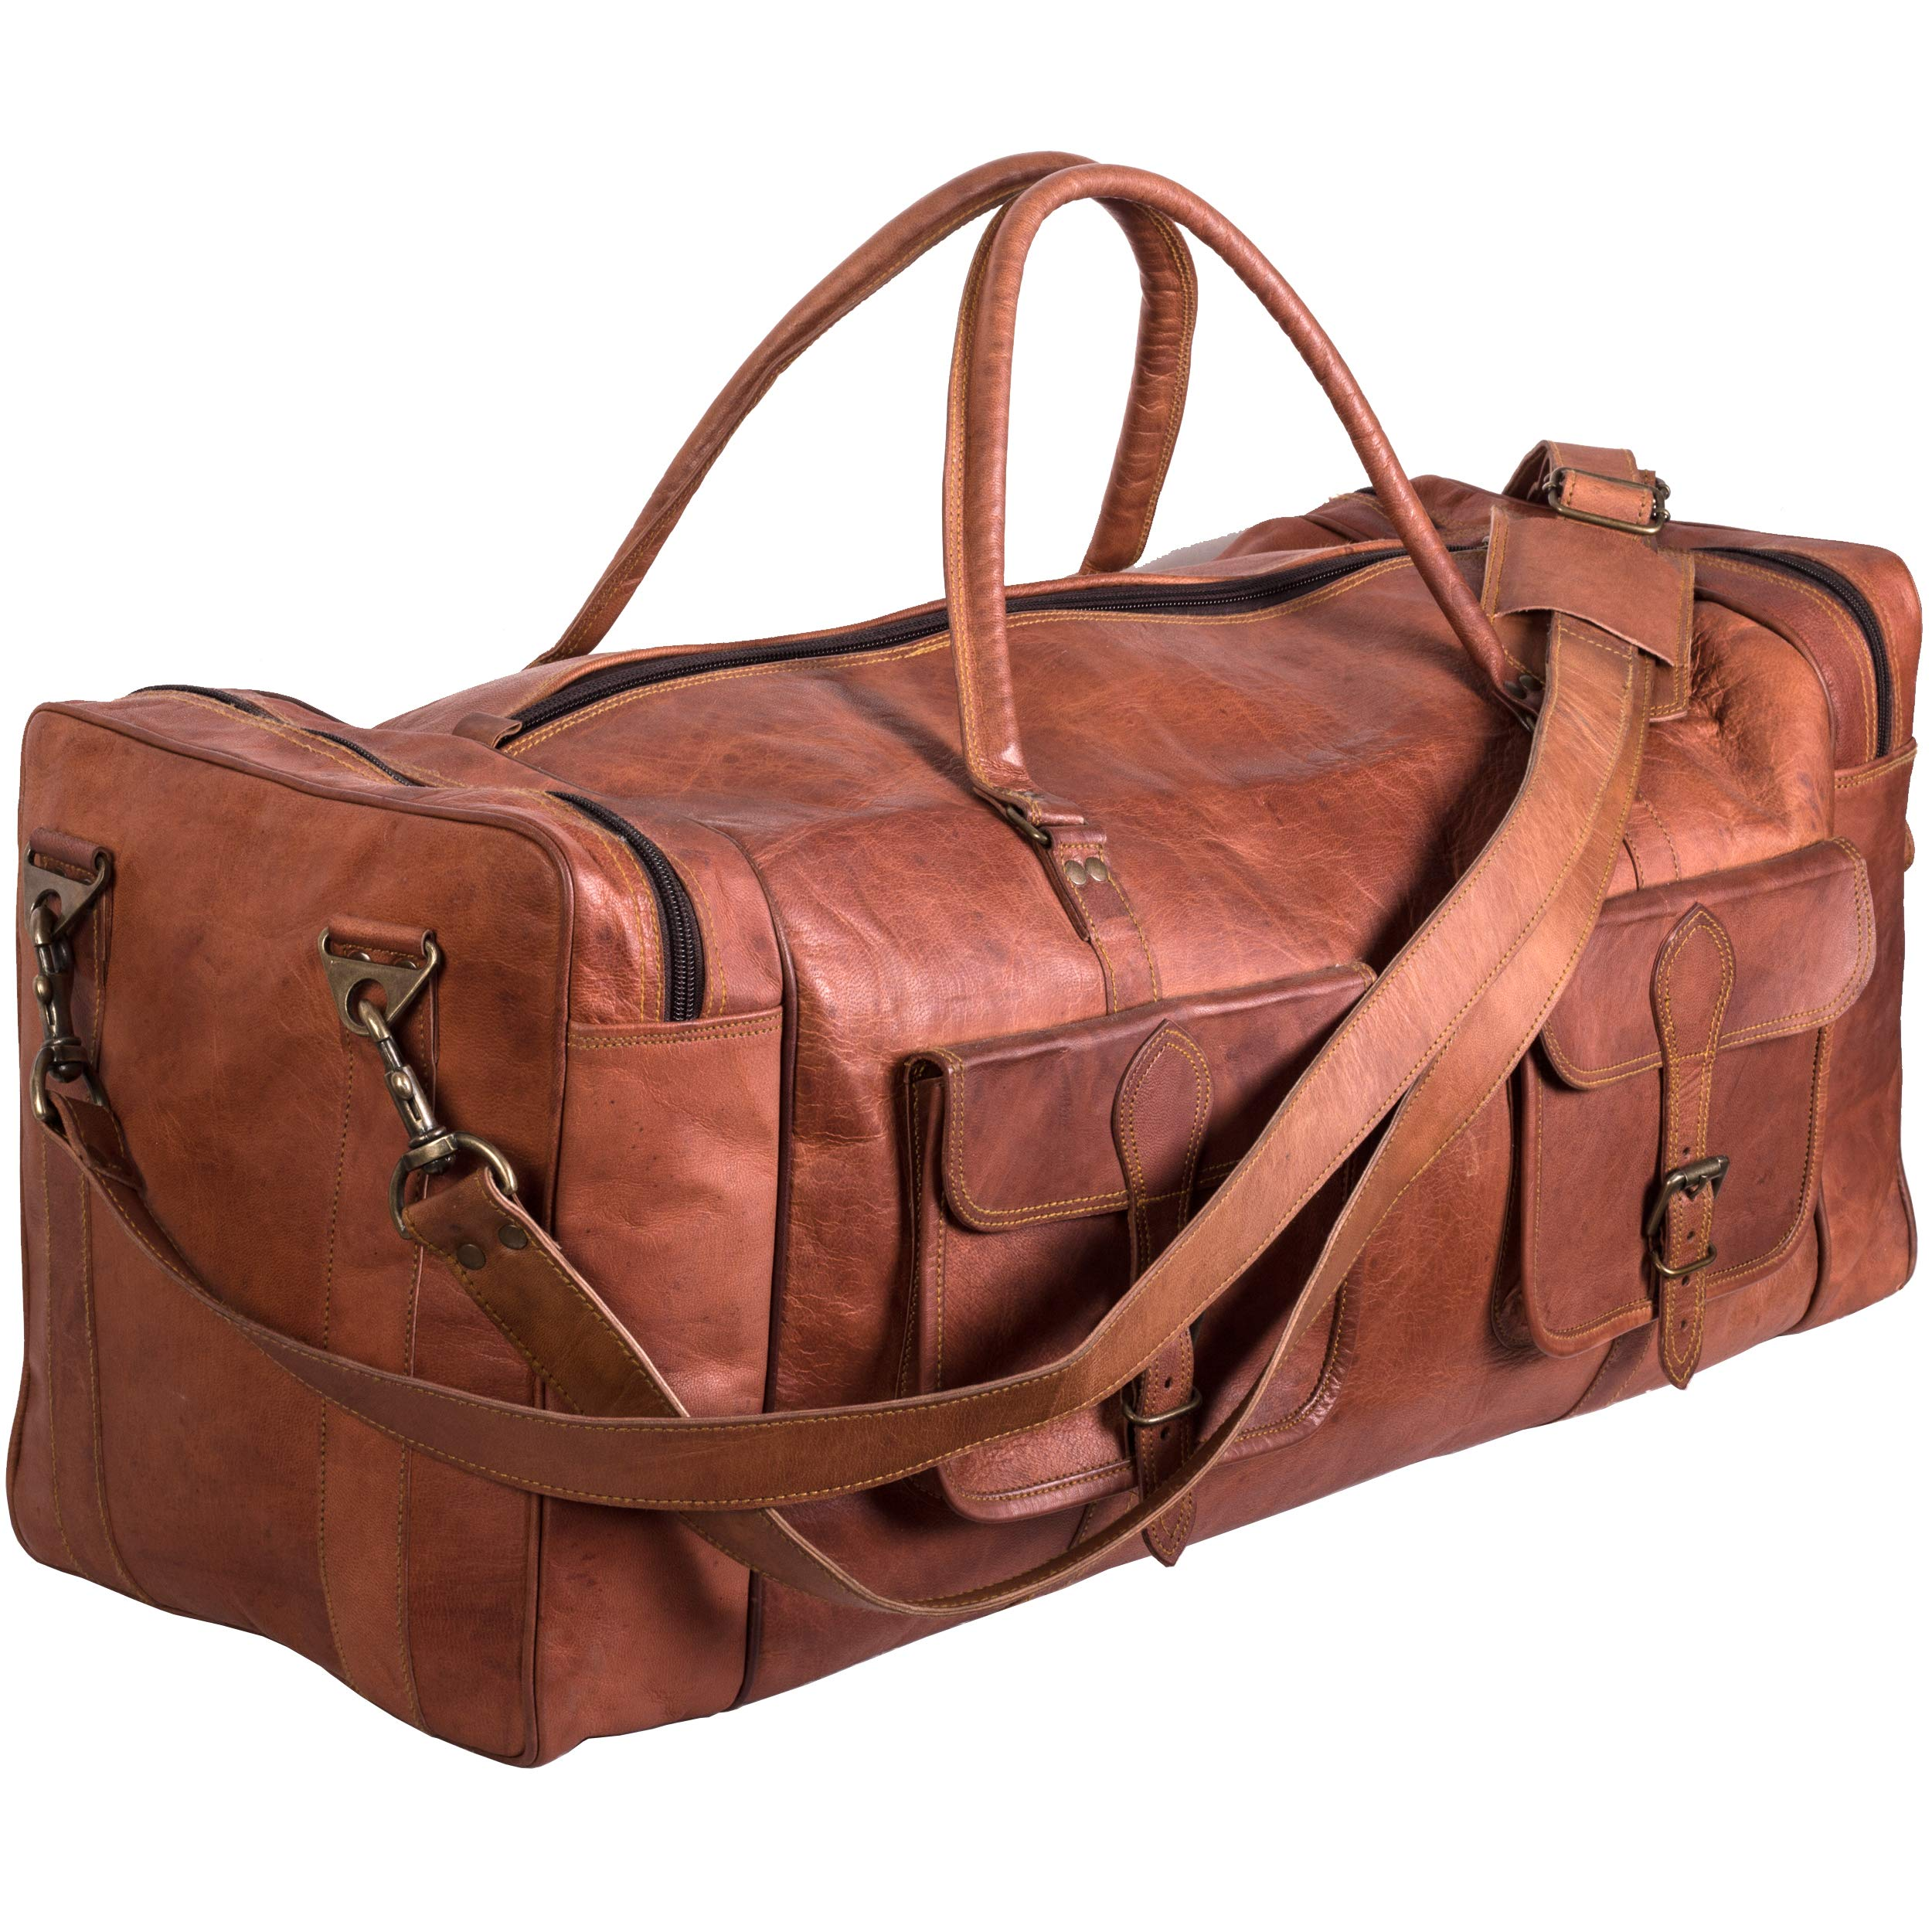 Leather Duffel Bag 30 inch Large Travel Bag Gym Sports Overnight Weekender Bag by Komal s Passion Leather (30 inch)